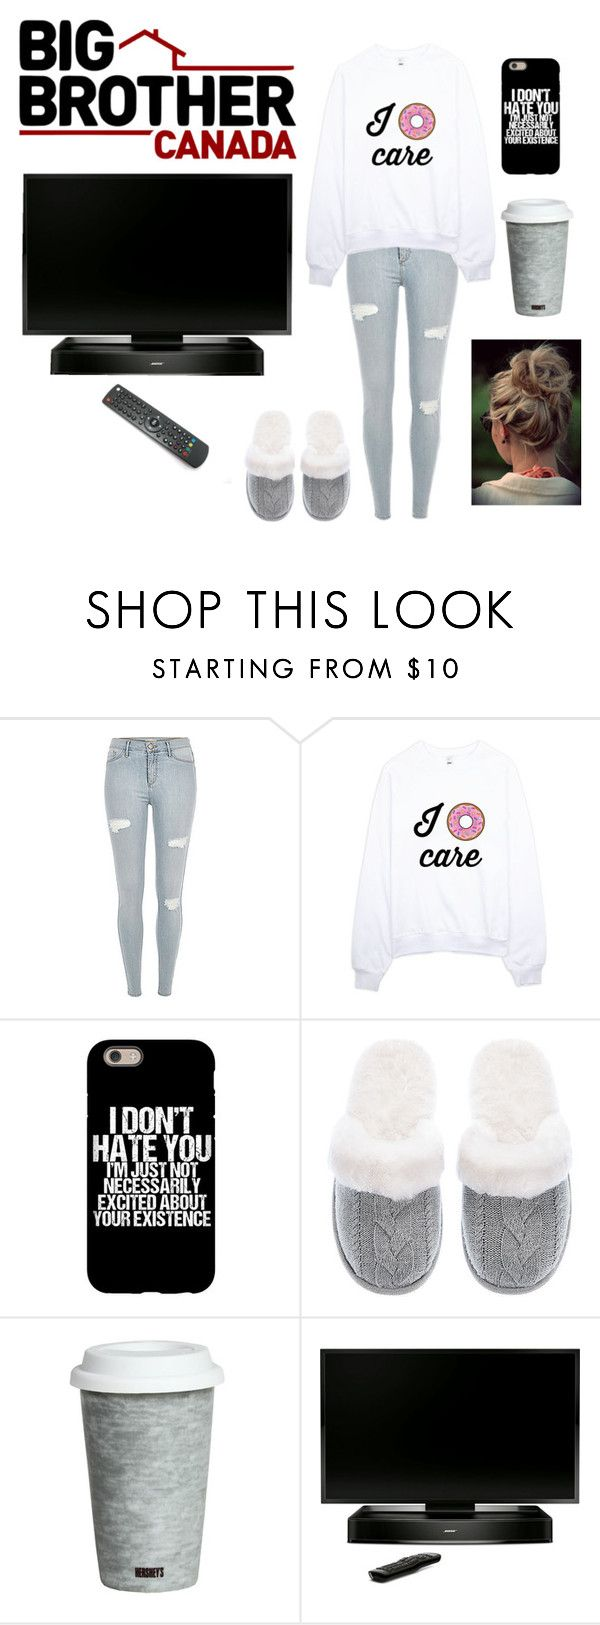 """Watching Big Brother Canada"" by desireewolfe ❤ liked on Polyvore featuring Victoria's Secret, Fitz and Floyd, Bose, canada, bigbrother and BBCAN"